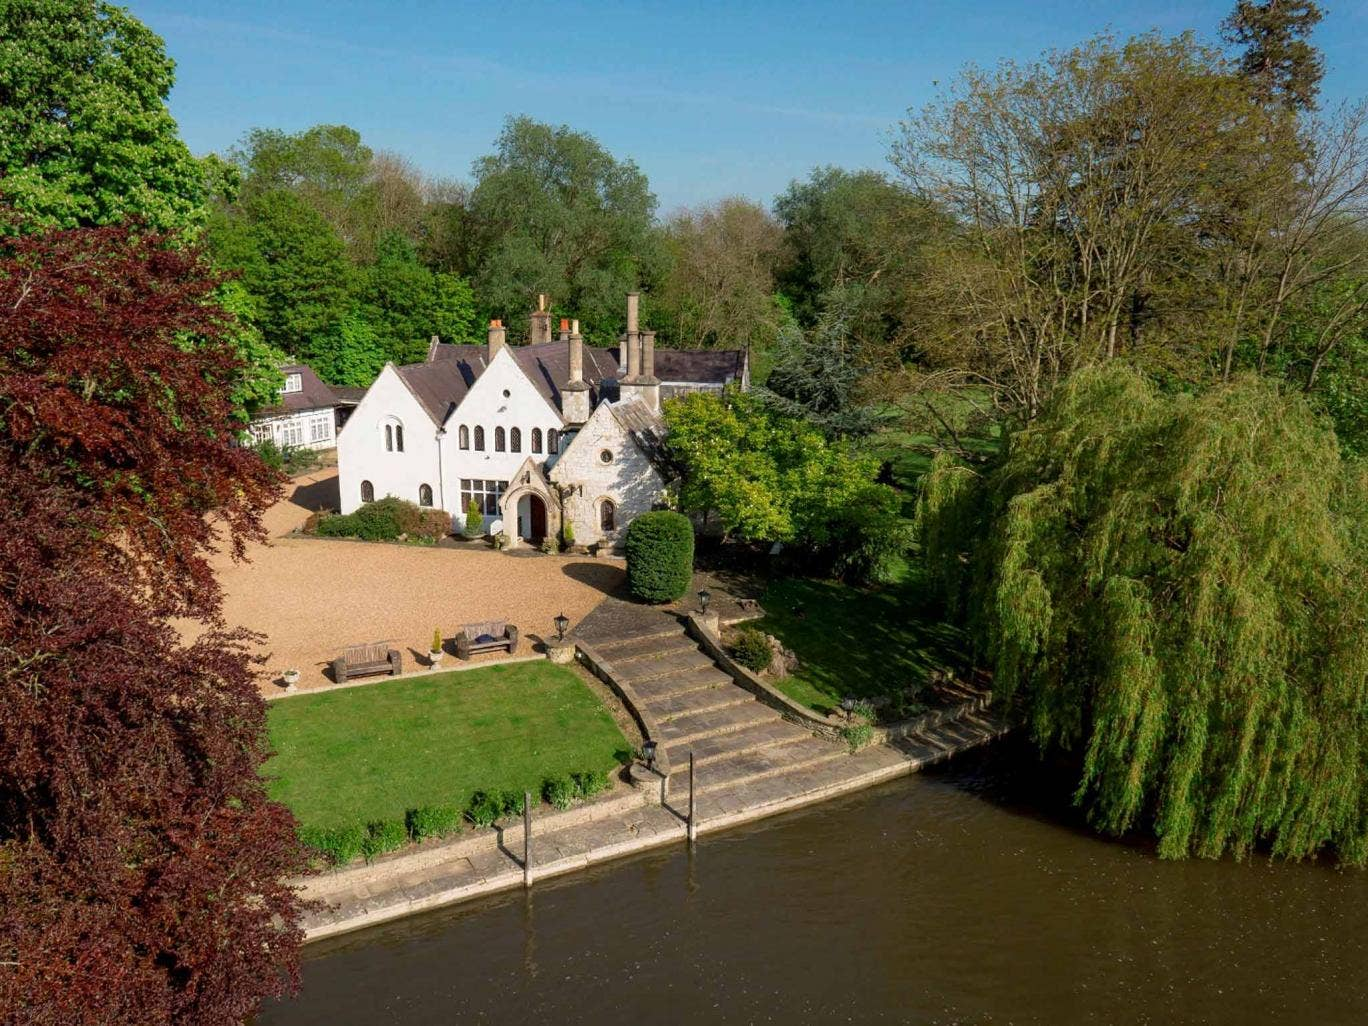 Magna Carta Island is for sale through Sotheby's International Realty for £3,950,000